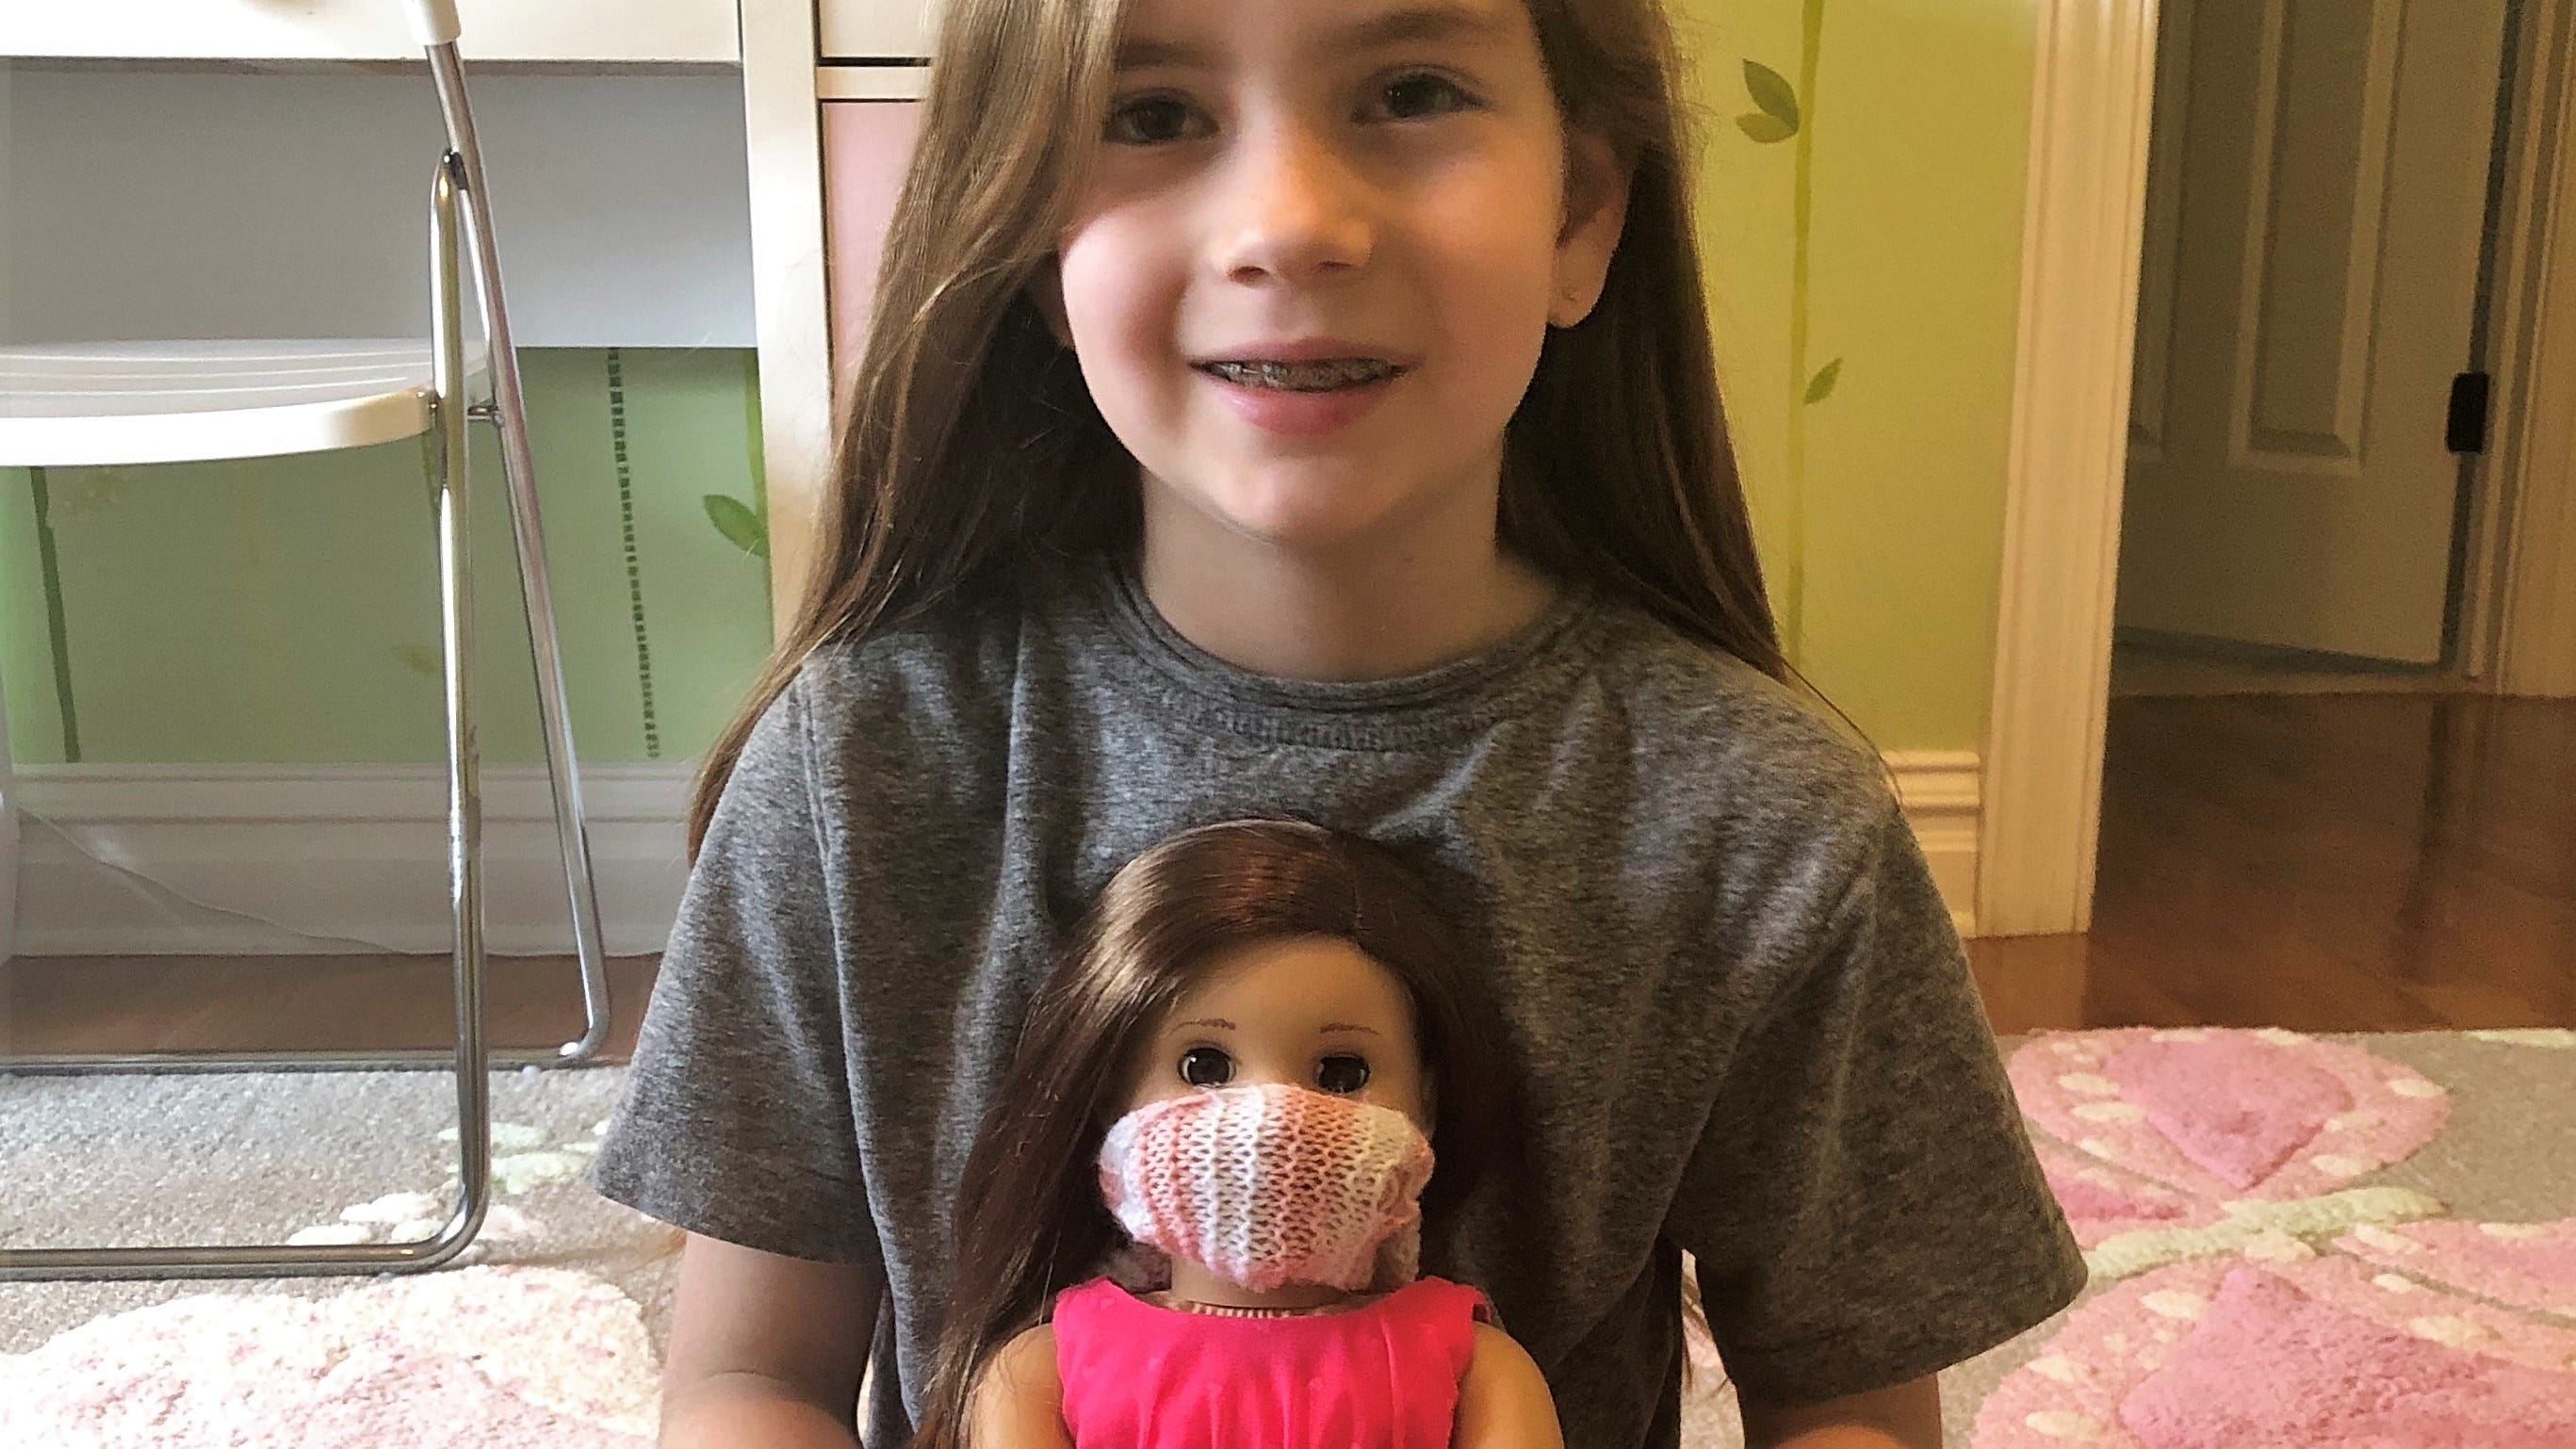 Westfield Nj Student Sends Pandemic Proposal To American Girl Doll